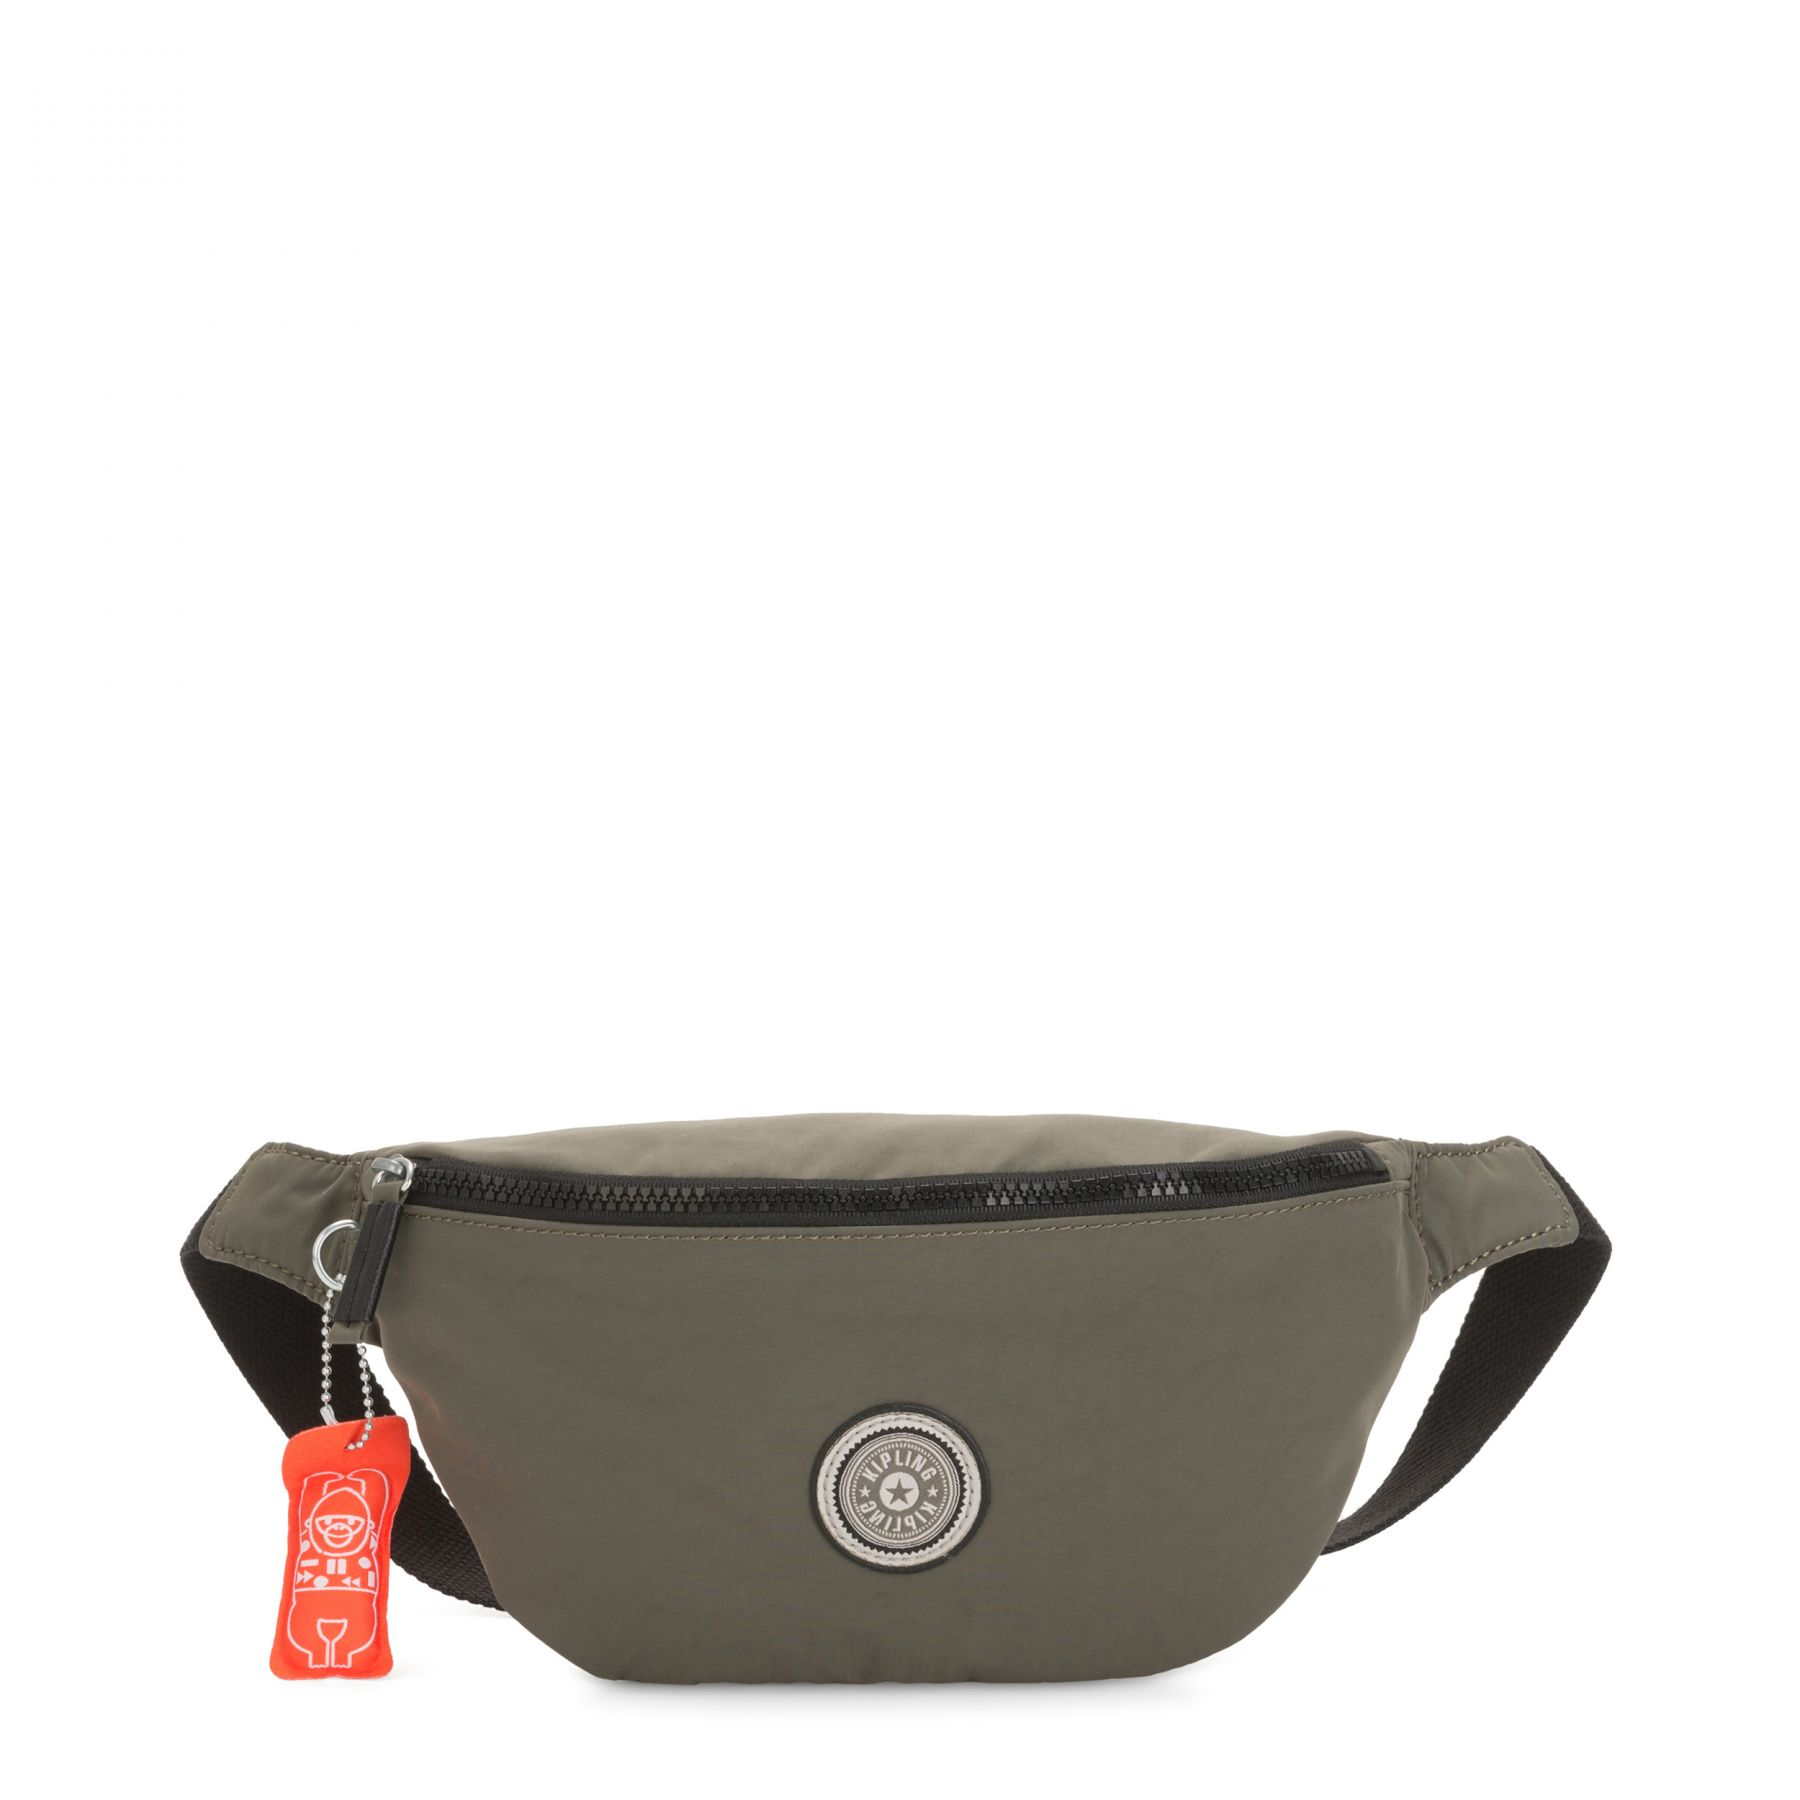 FRESH Latest Shoulder Bags by Kipling - Front view